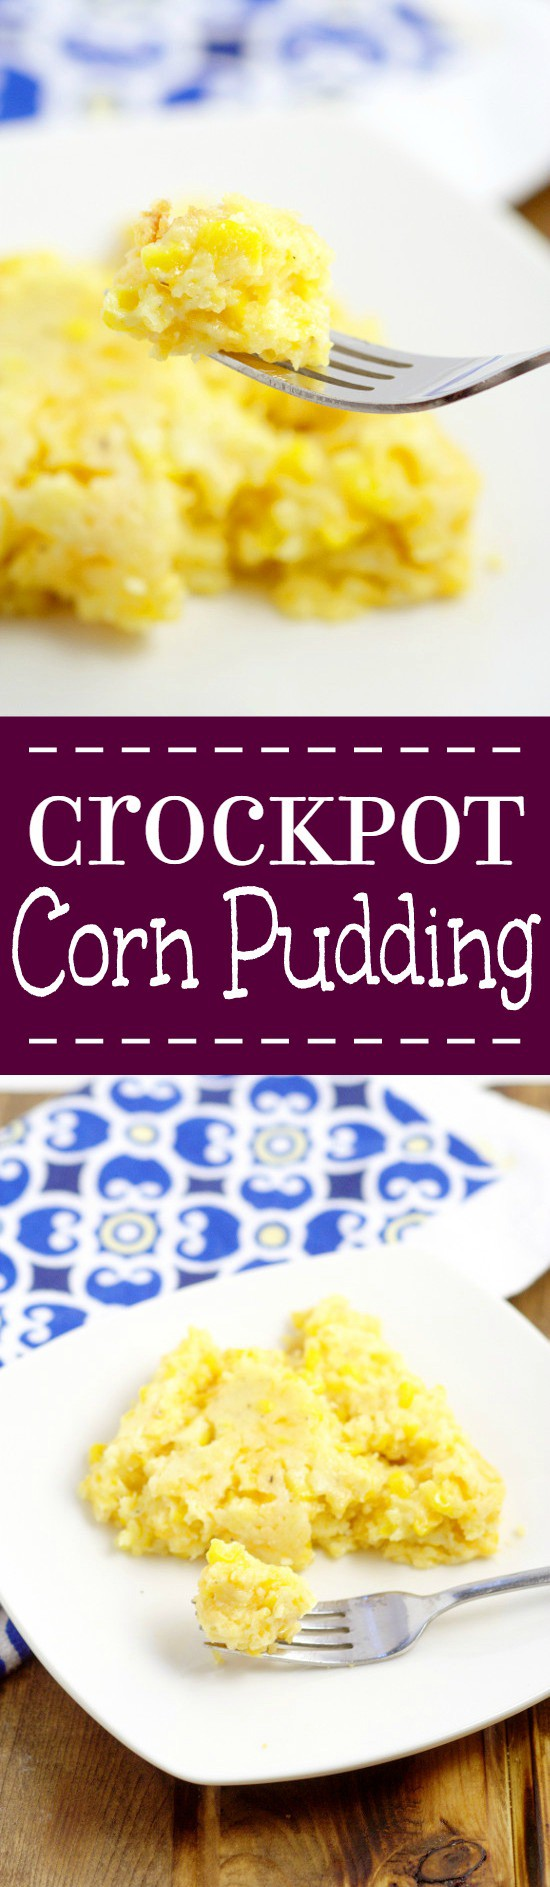 Crockpot Corn Pudding recipe with sweet corn and cornbread mixed with salty, gooey cheese, all in the slow cooker, for a delicious and simple side dish.  I love this at Thanksgiving every year! Plus it takes care of the veggies and the bread!